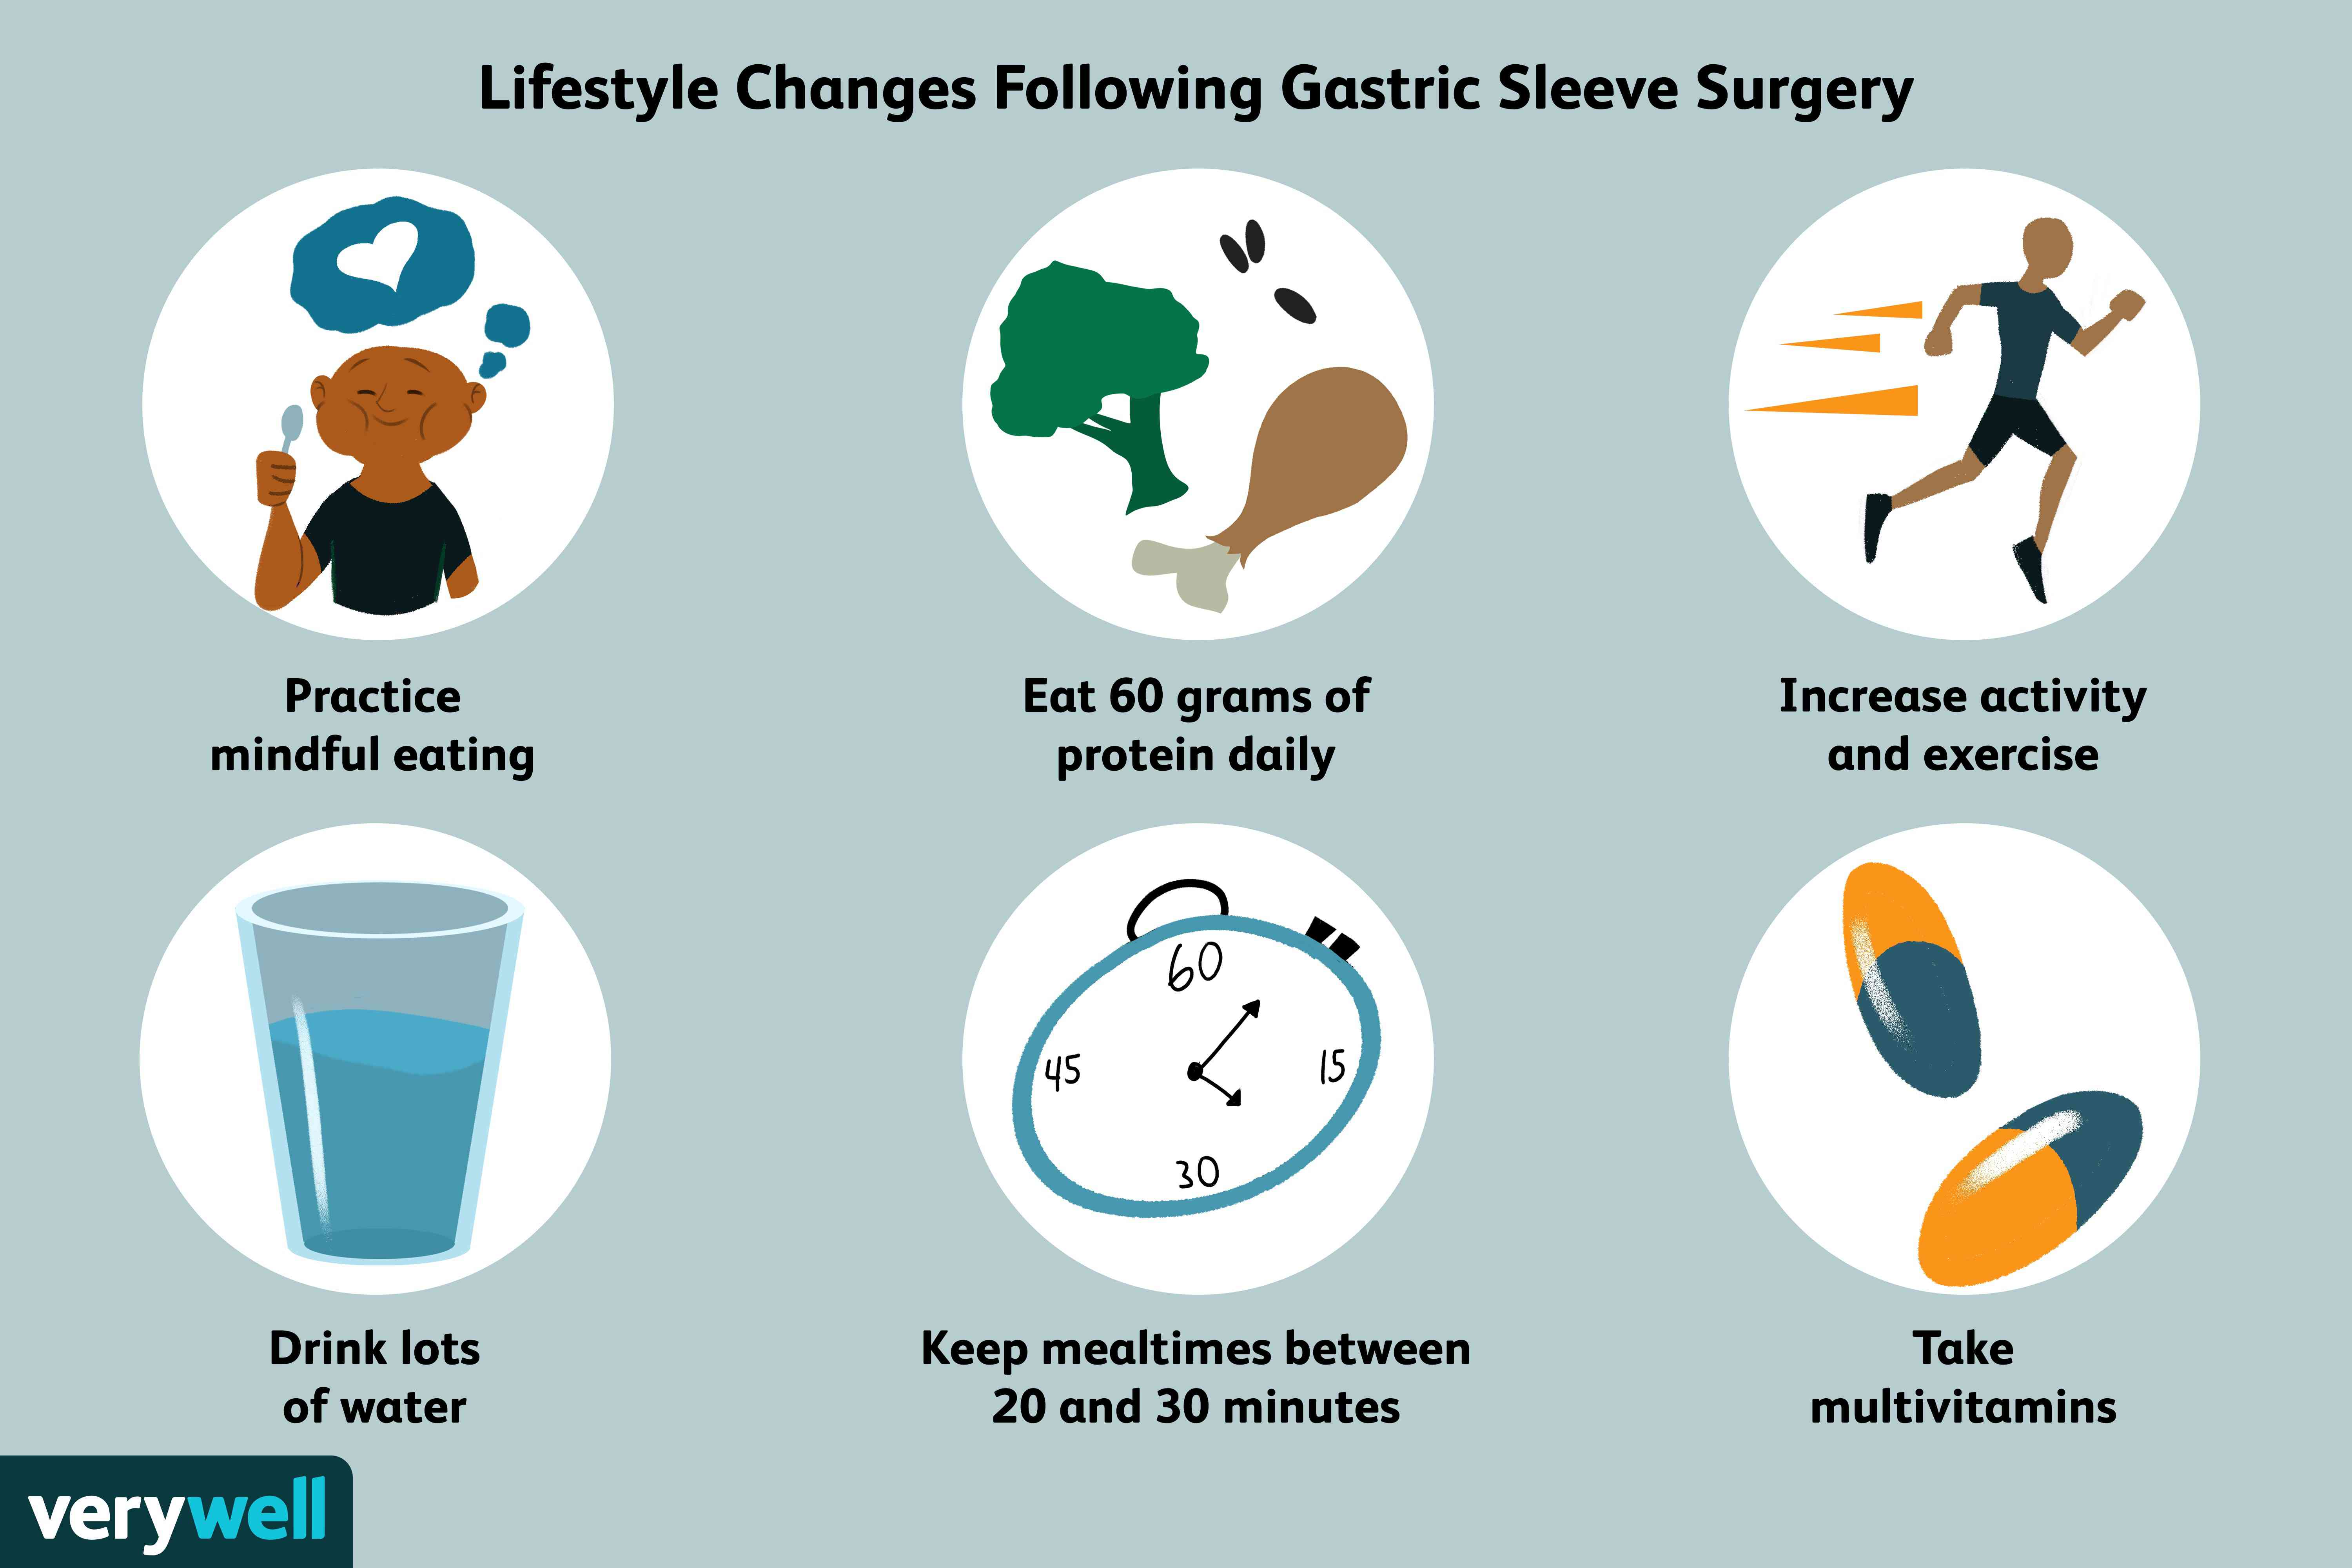 Lifestyle Changes Following Gastric Sleeve Surgery